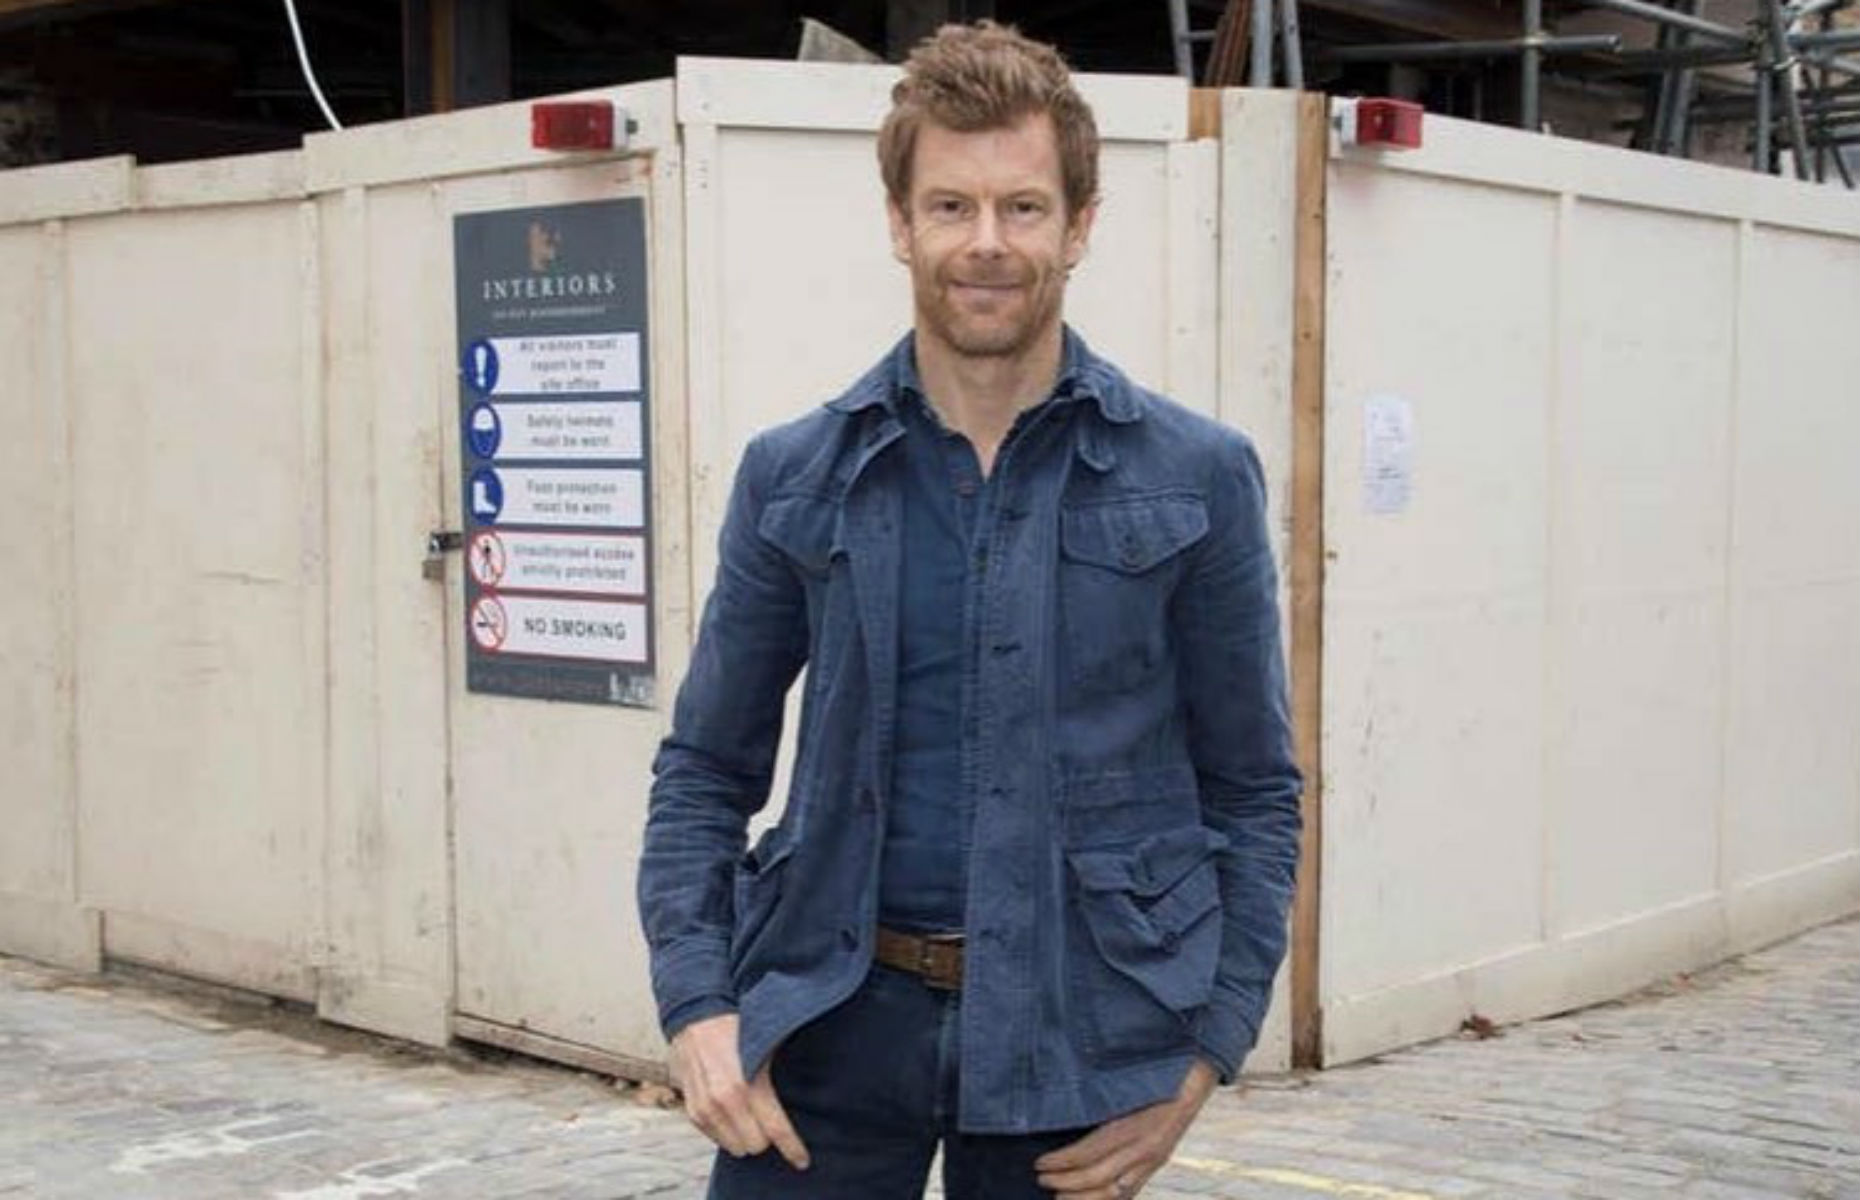 Tom Aikens at Muse location in Belgravia